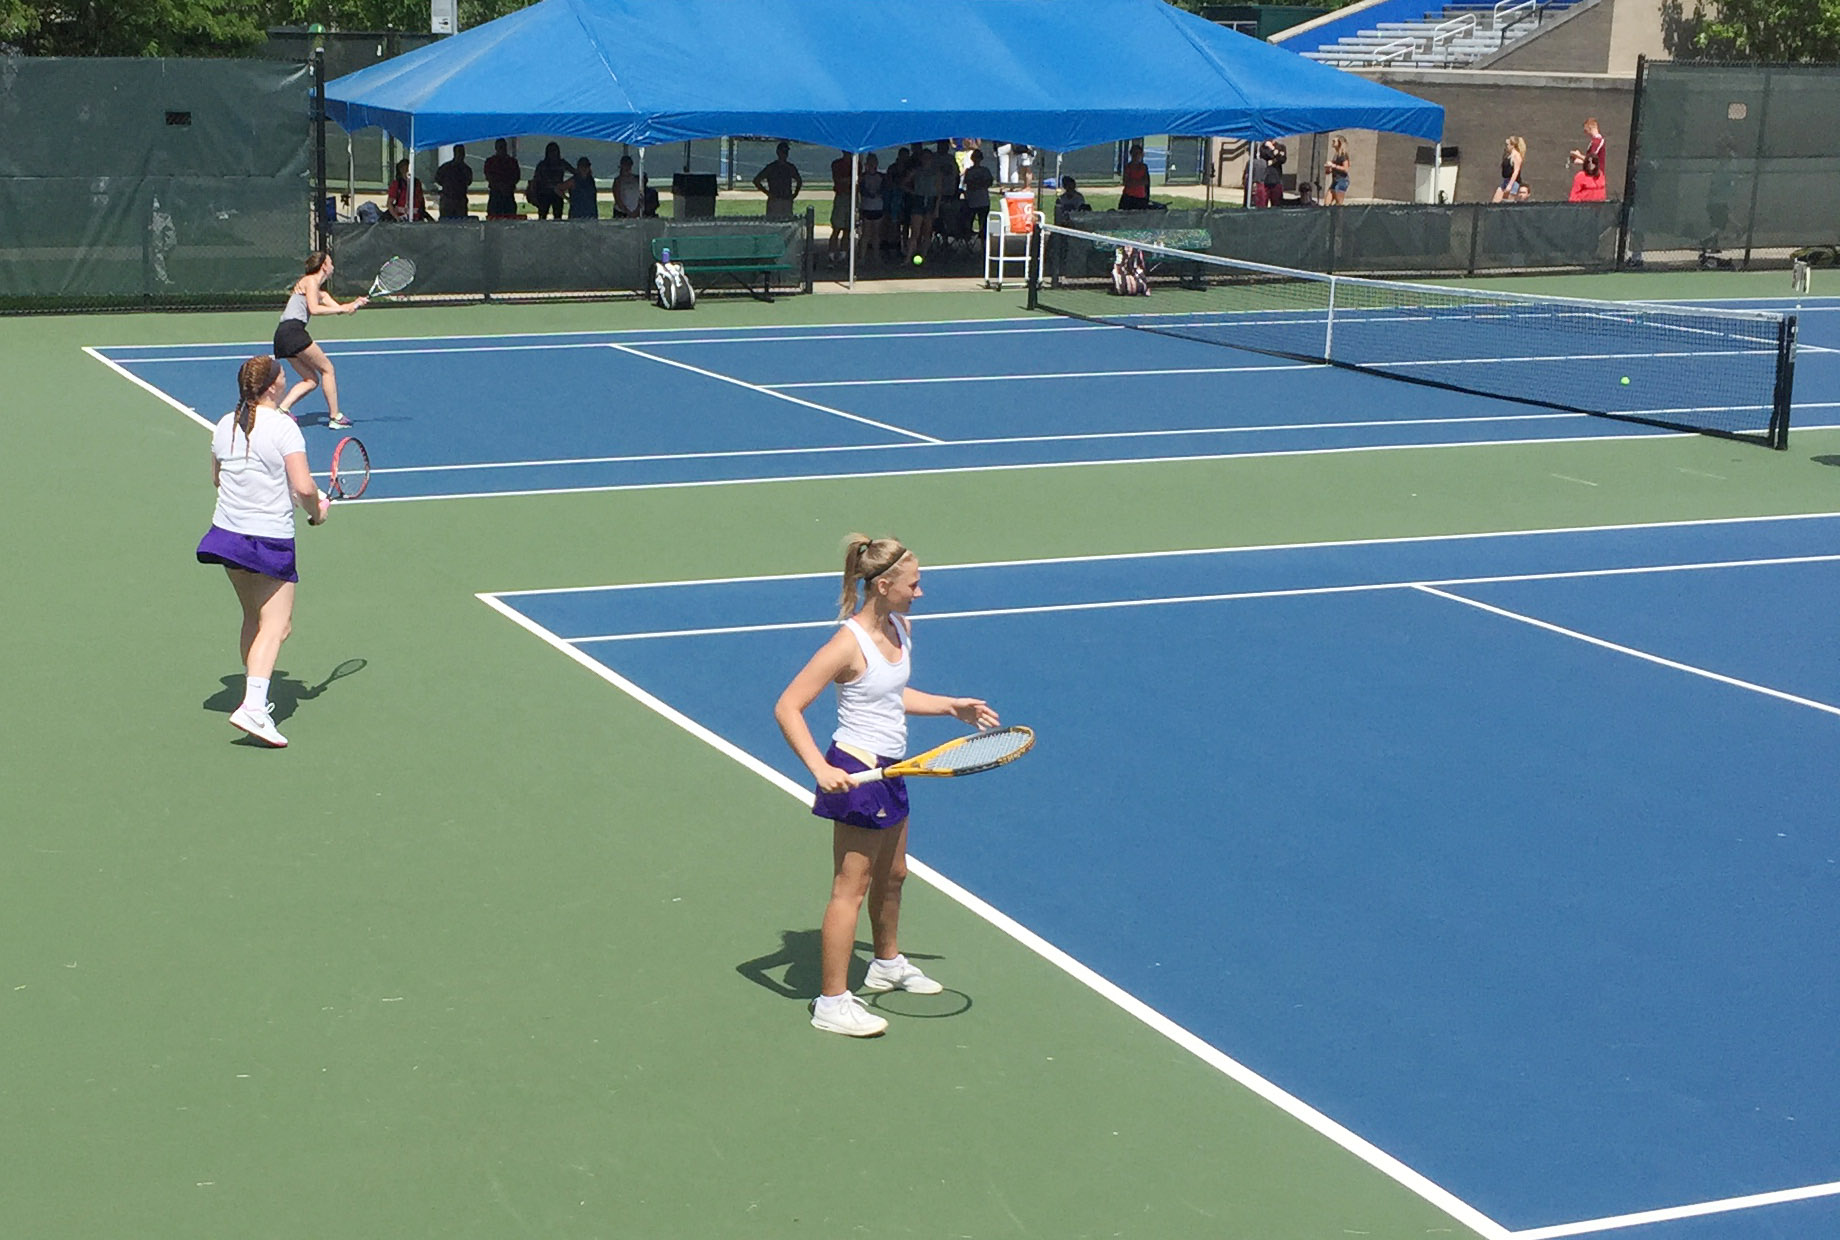 CHS senior Mallory Haley, at left, and freshman Victoria Cox get set to play in the KHSAA state tennis tournament.